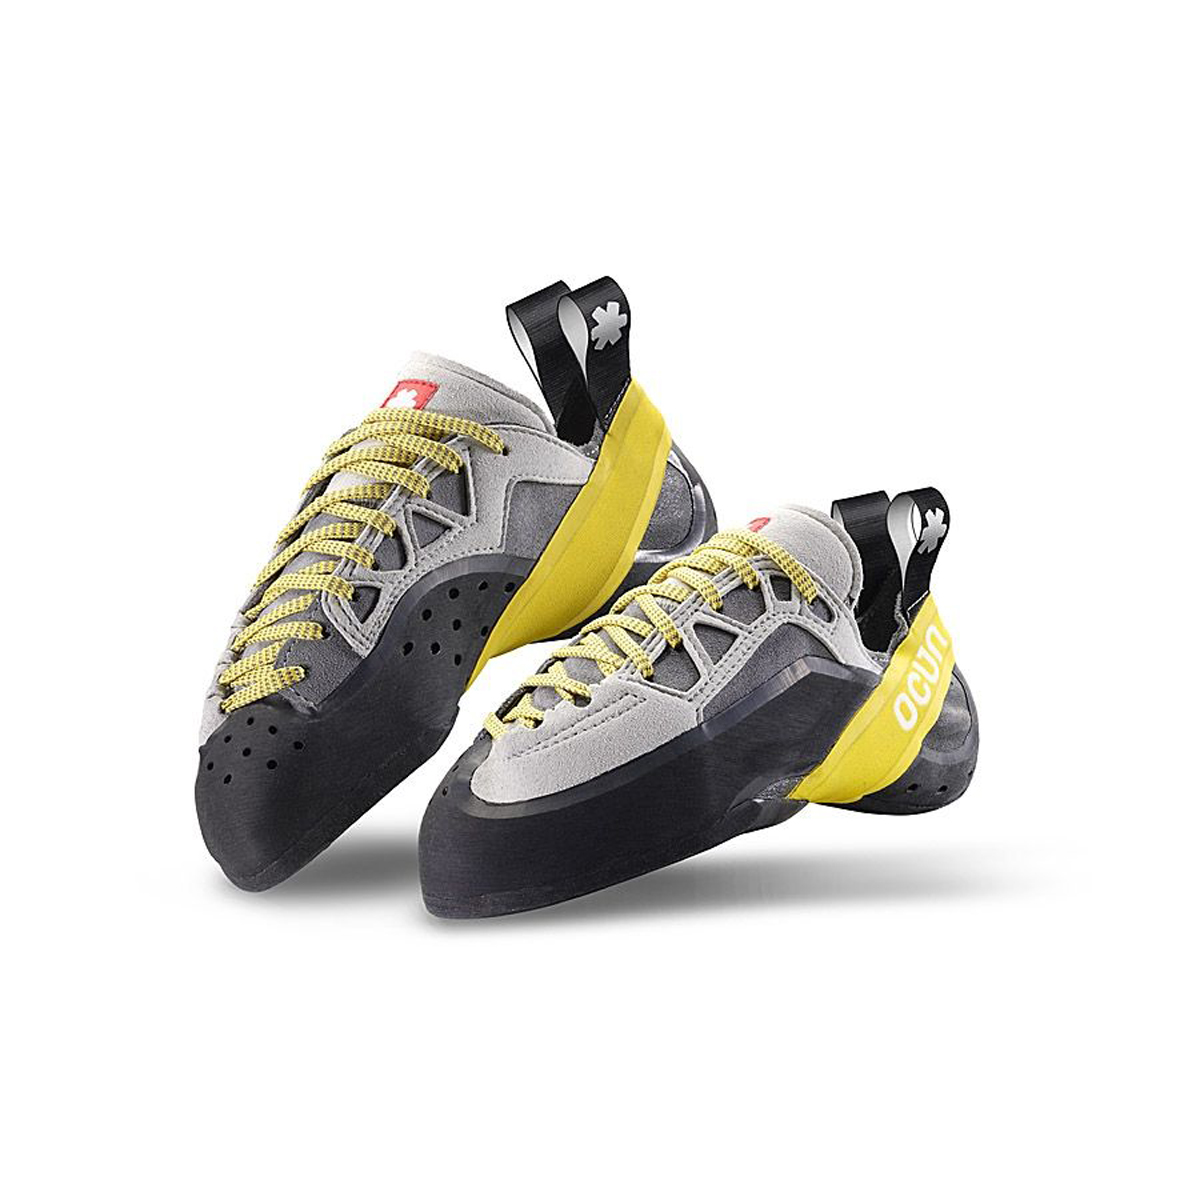 buy diamond on ocun trekkinn and outdoor shoe offers p mountain